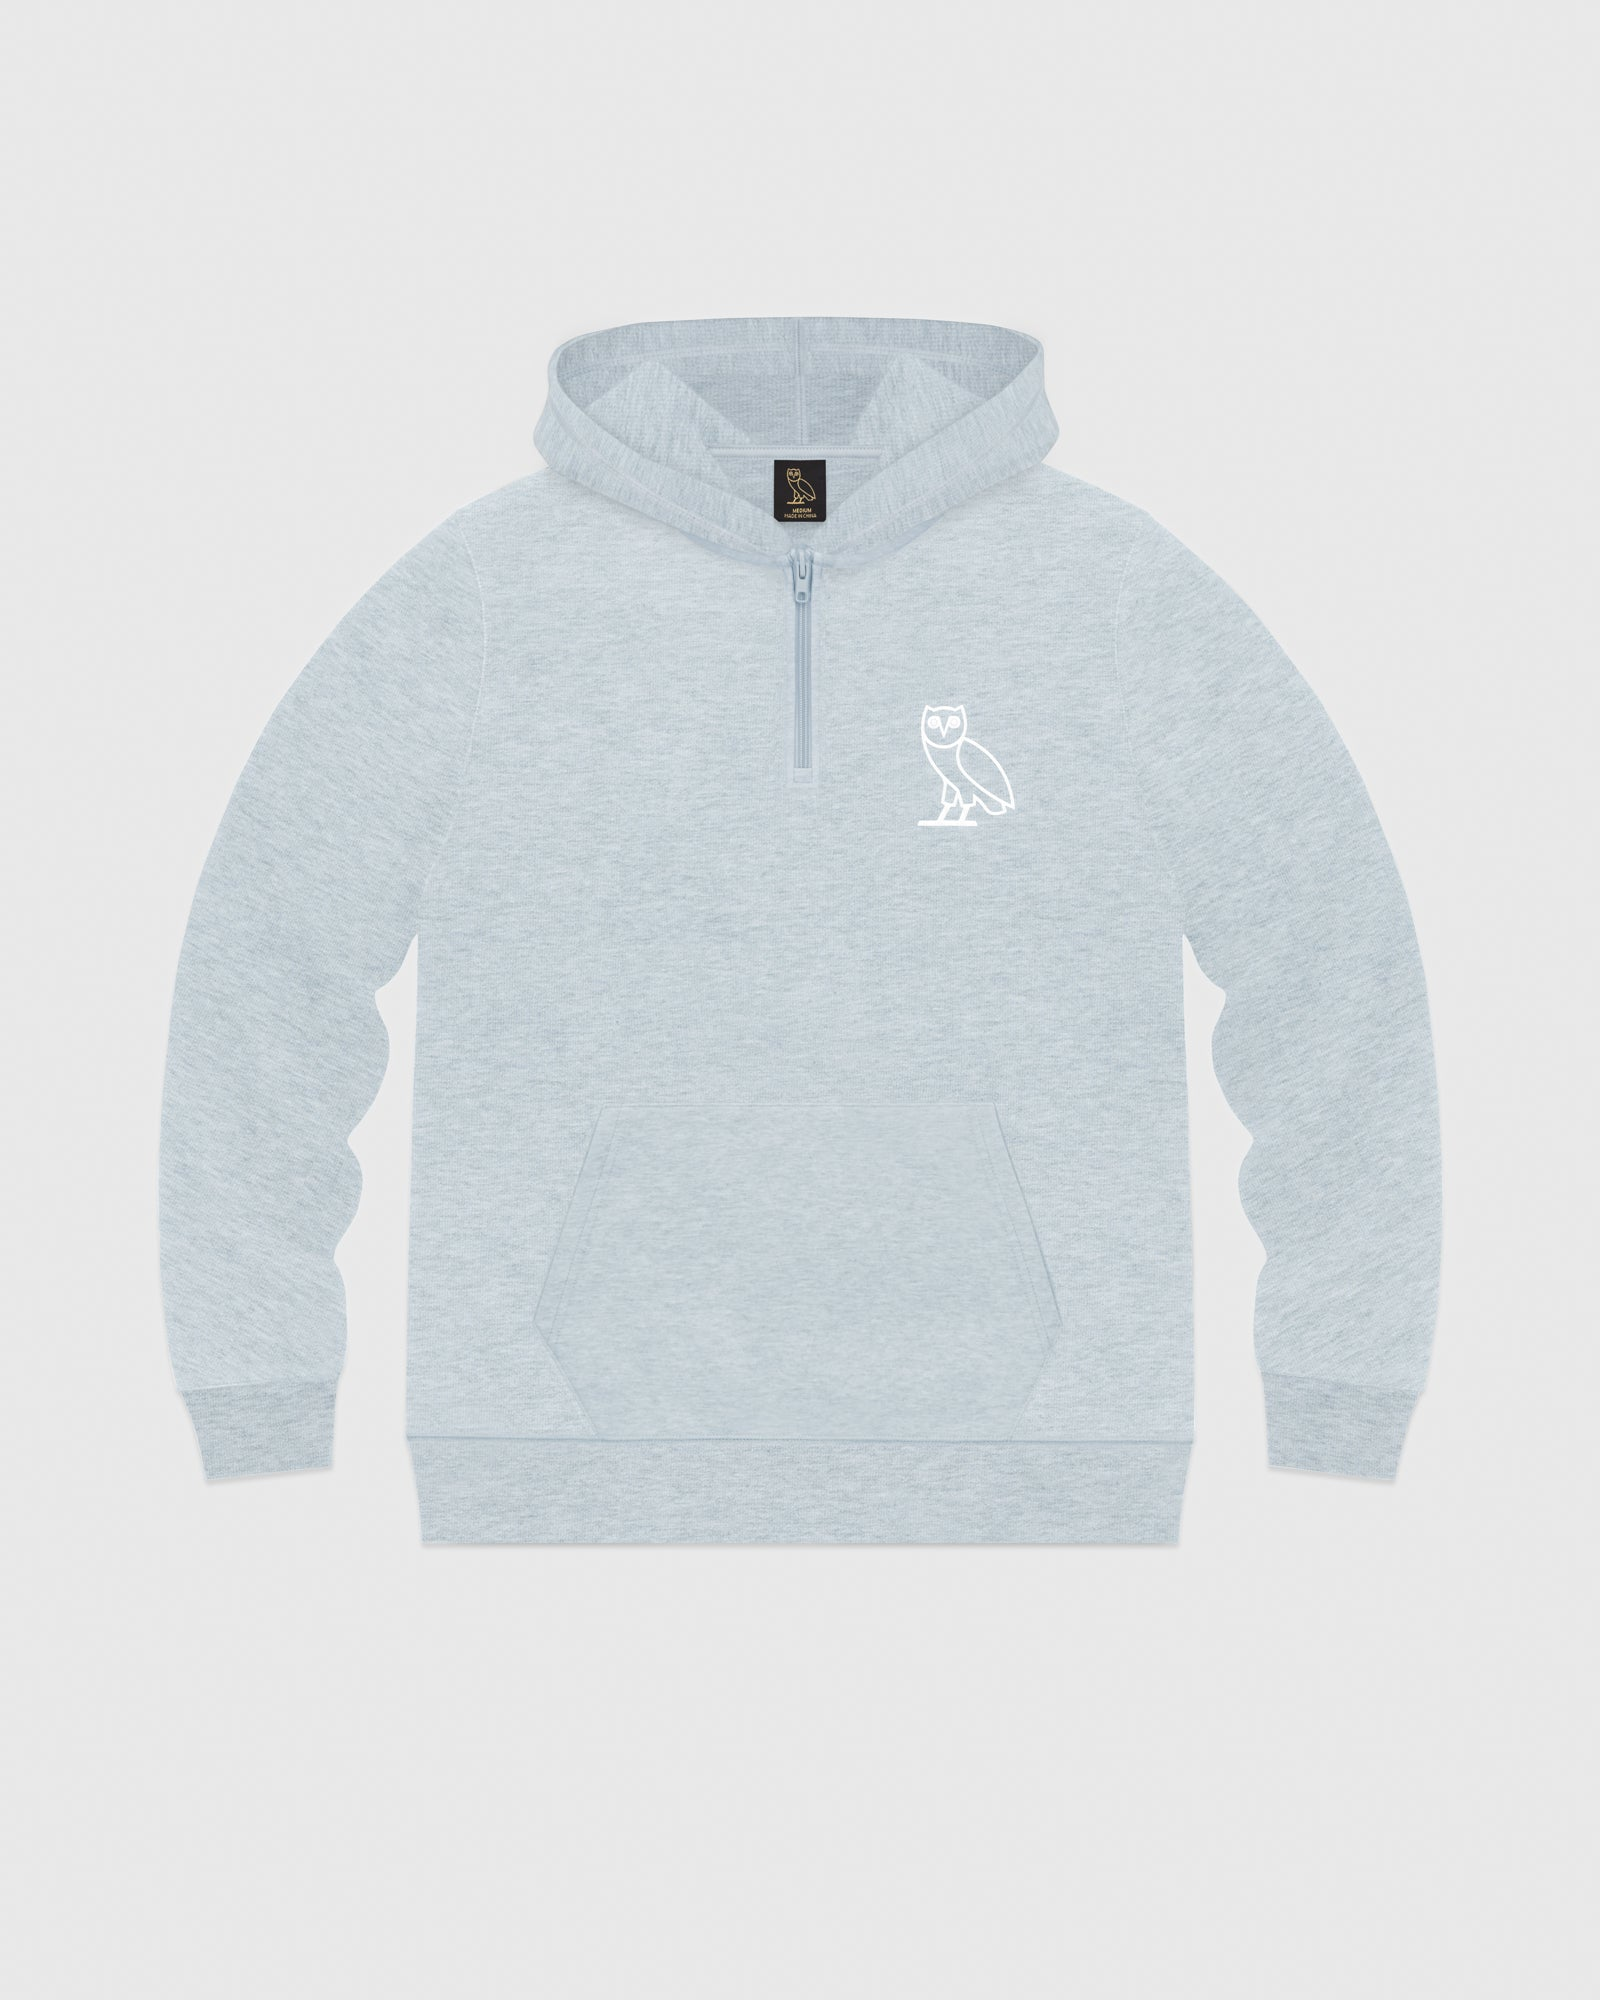 DOUBLE KNIT QUARTER-ZIP HOODIE - HEATHER BLUE IMAGE #1